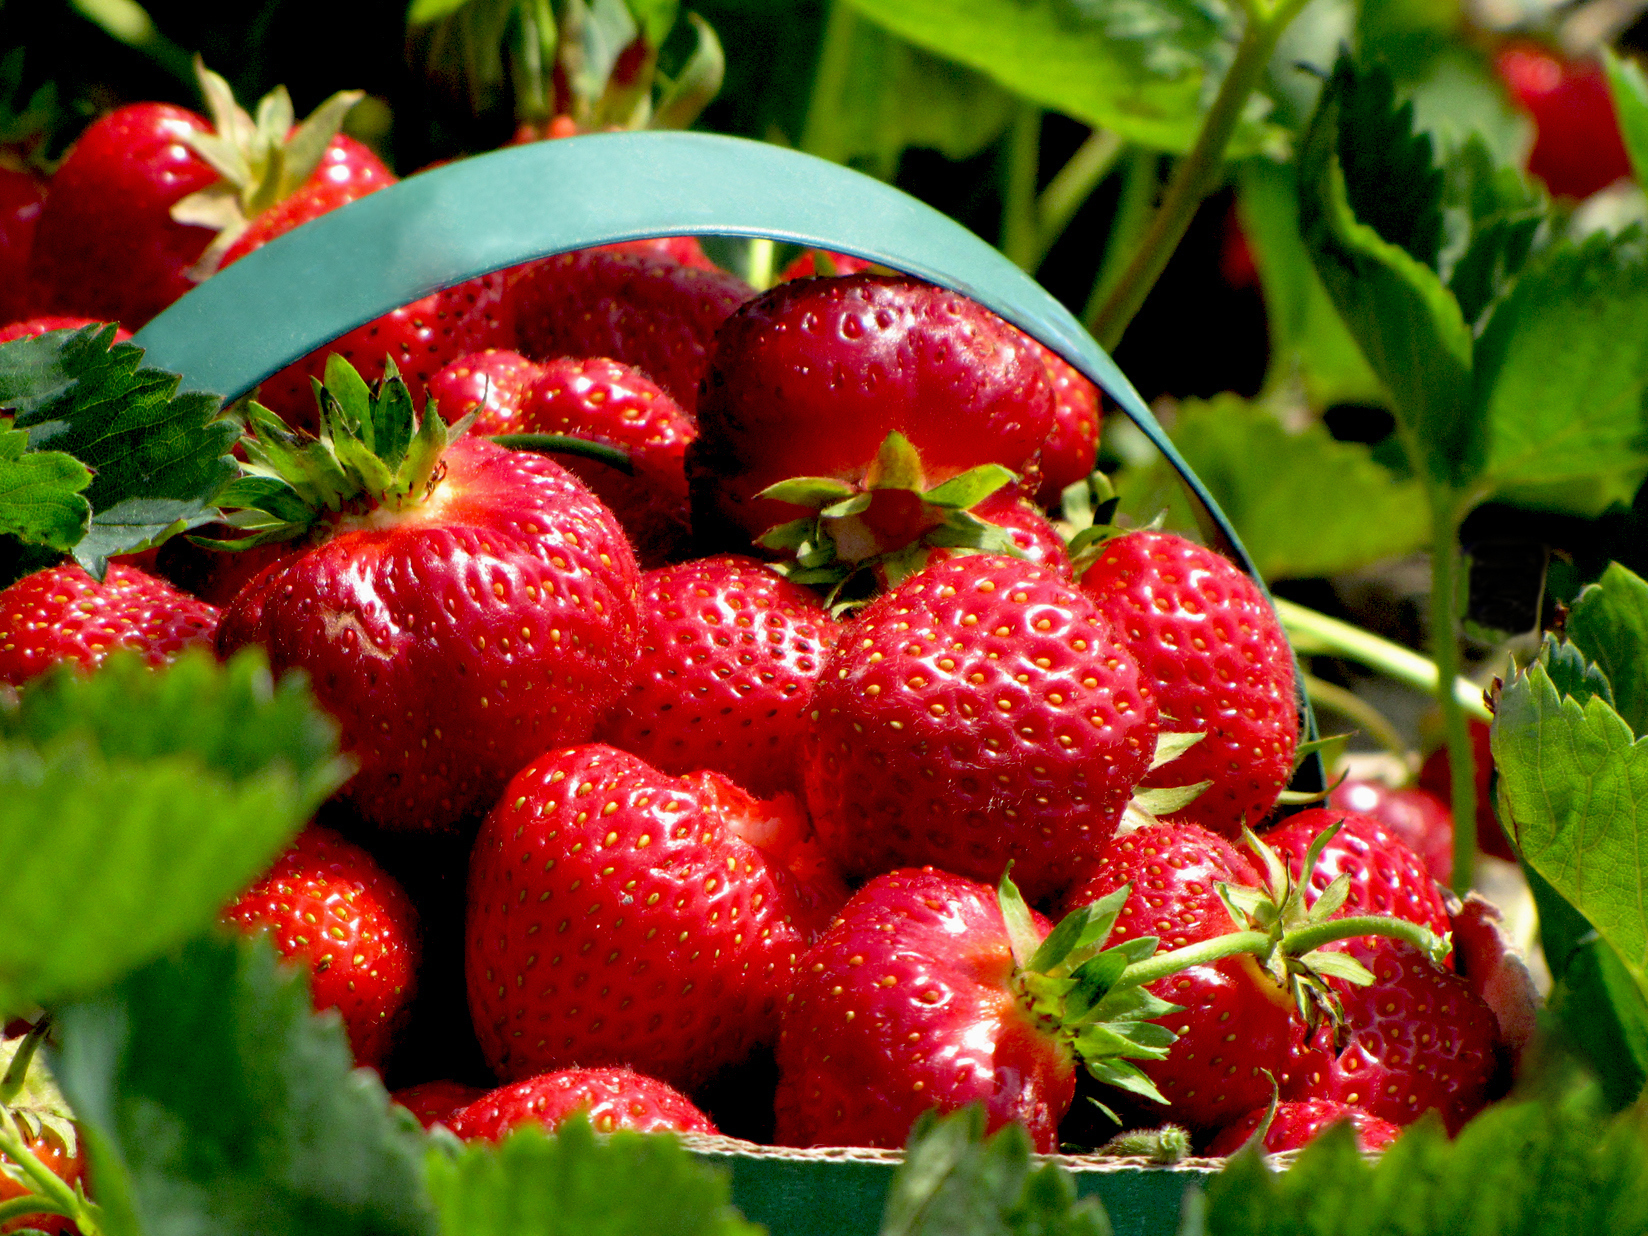 Scotty Brand berries are grown by Bruce Farms in Perthshire